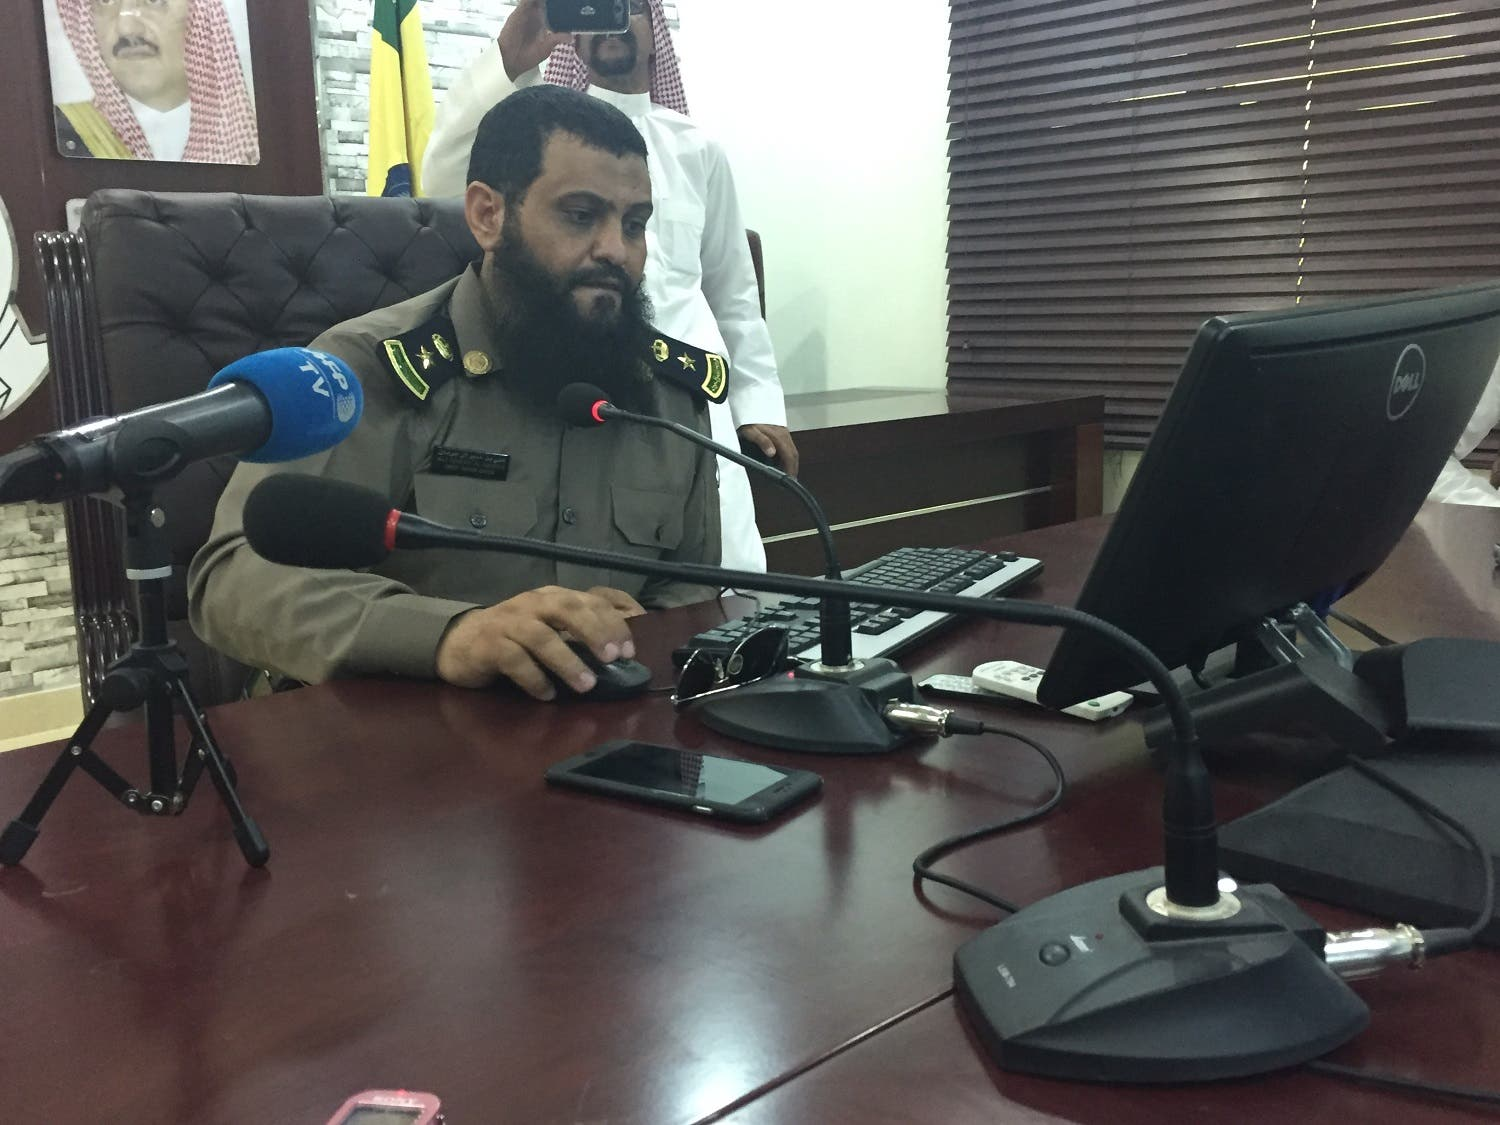 Najran's Civil Defense Spokesperson Ali Omeir al-Shahrani speaks to reporters. (Photo: Ismaeel Naar)